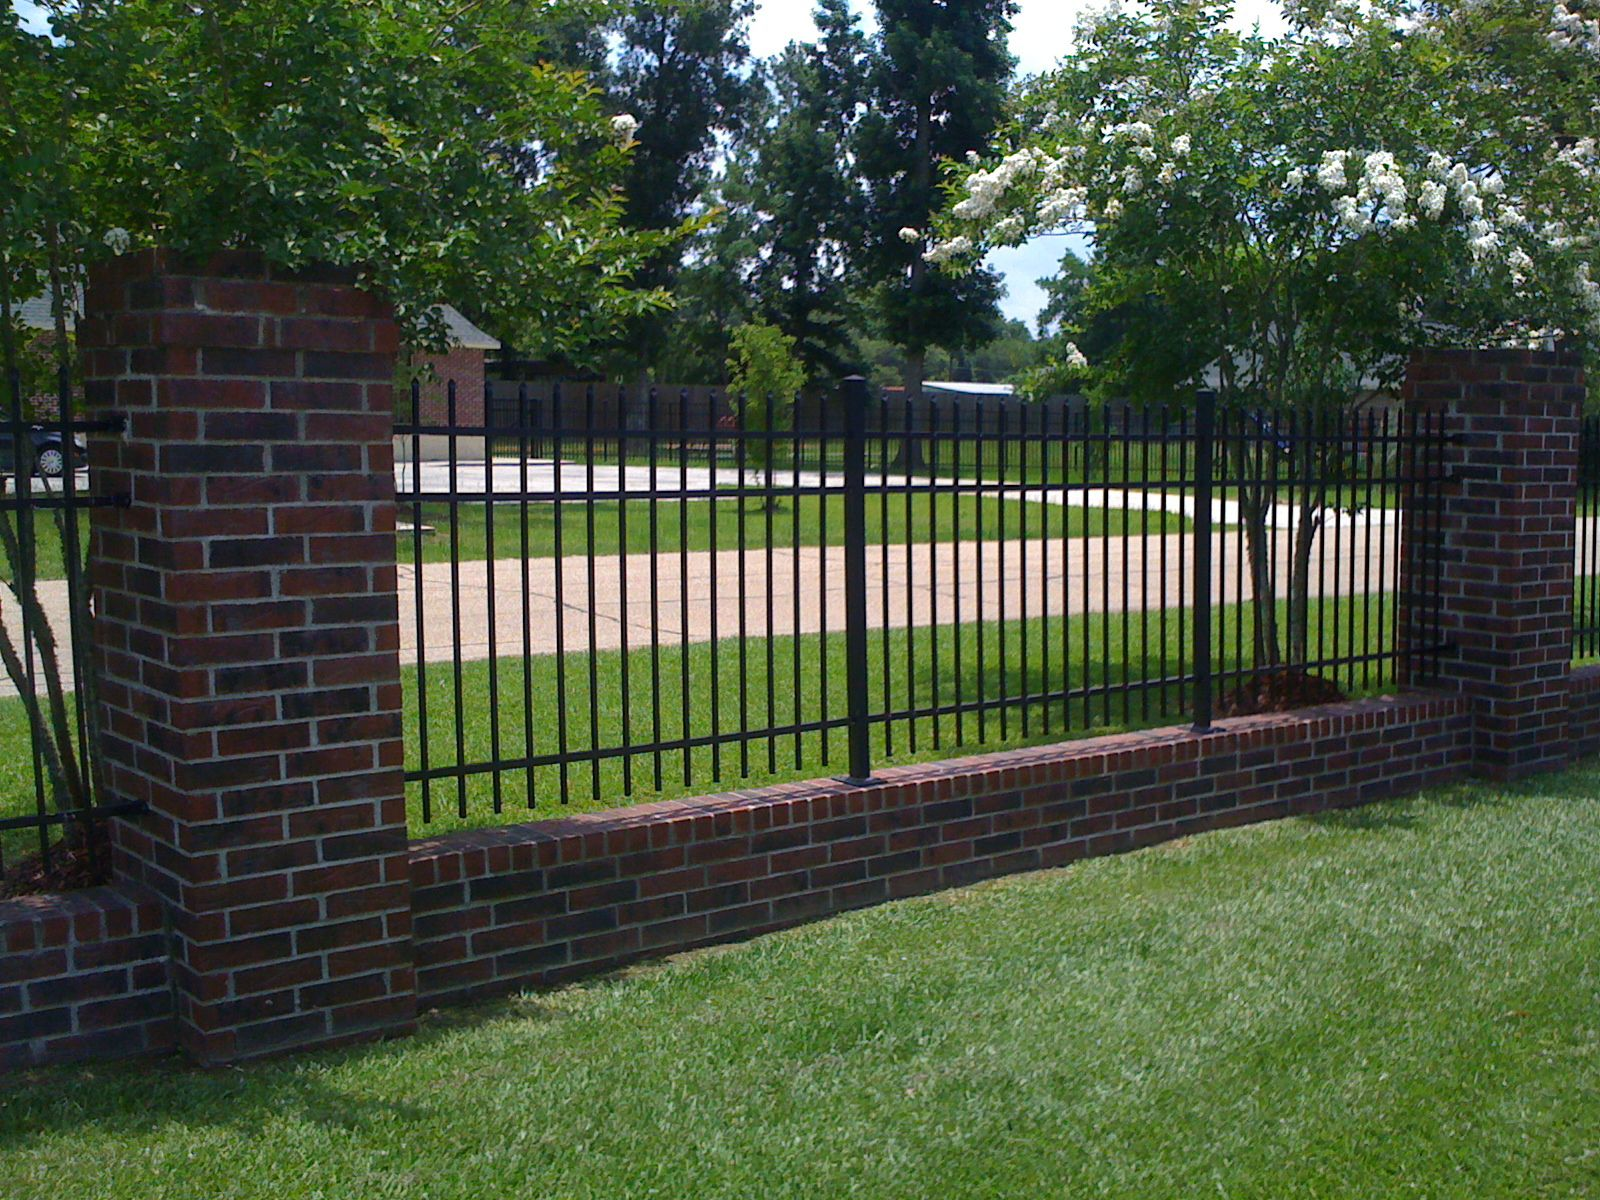 Wrought Iron Fencing With Brick Border Backyard Fences Fence Design Brick Fence